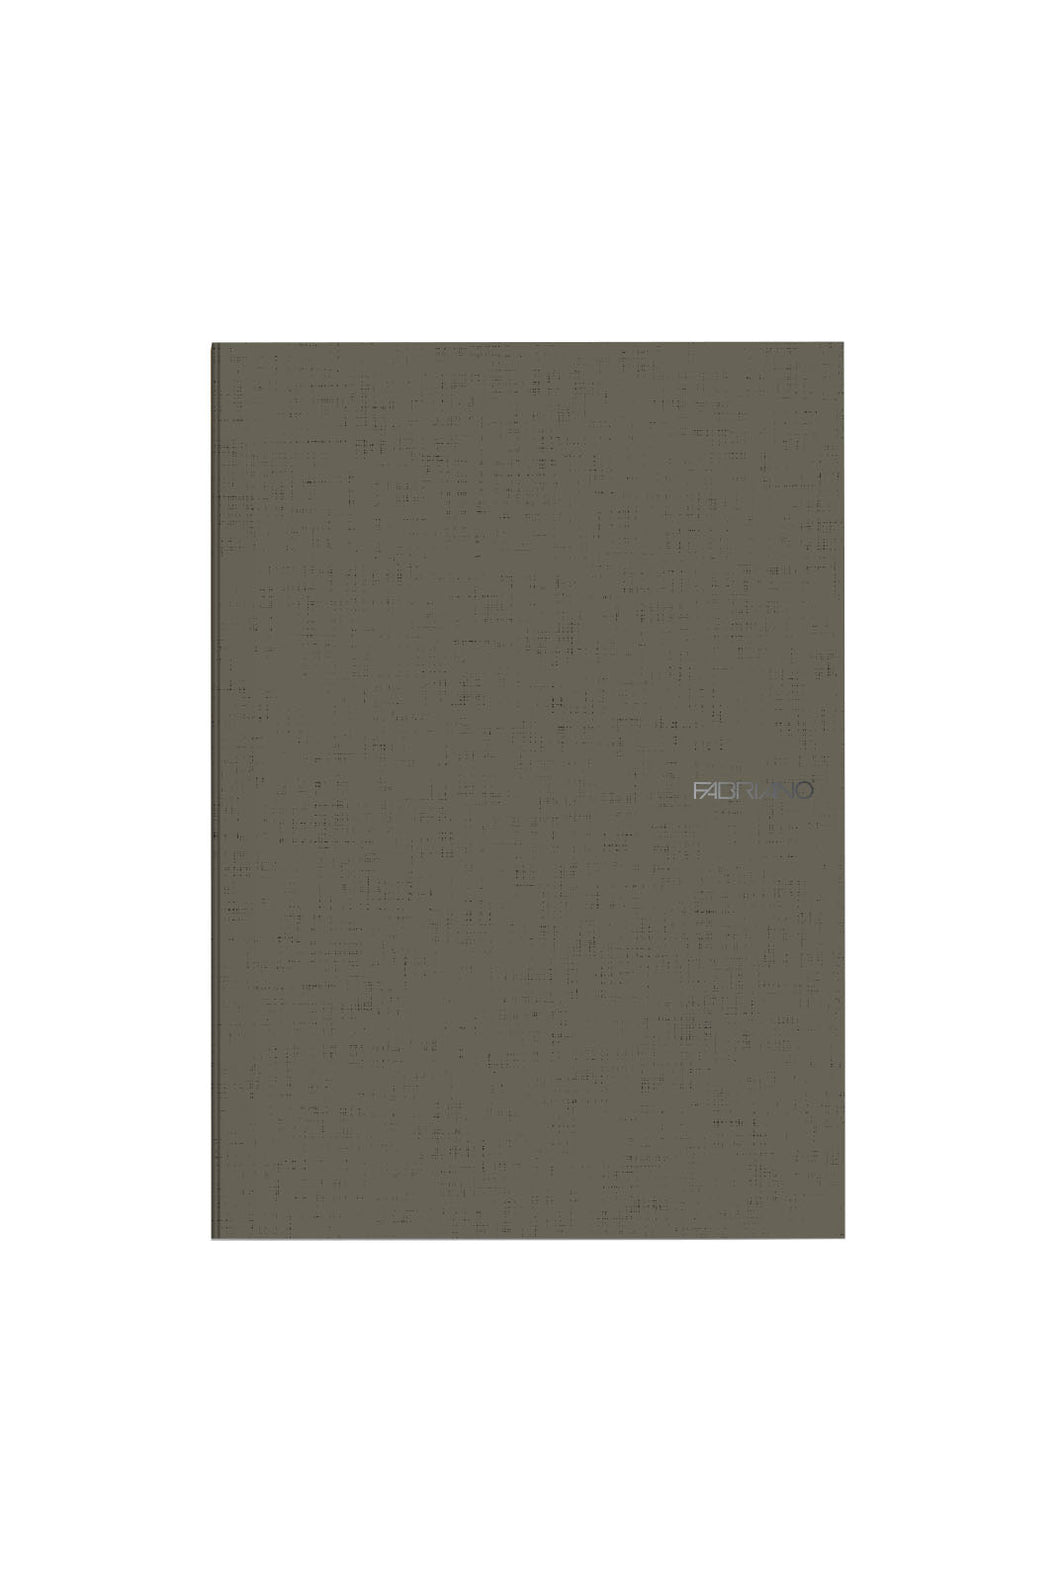 Fabriano Boutique - EcoQua Plus Notebook - Ruled - A4 (21x29.7cm) - Olive